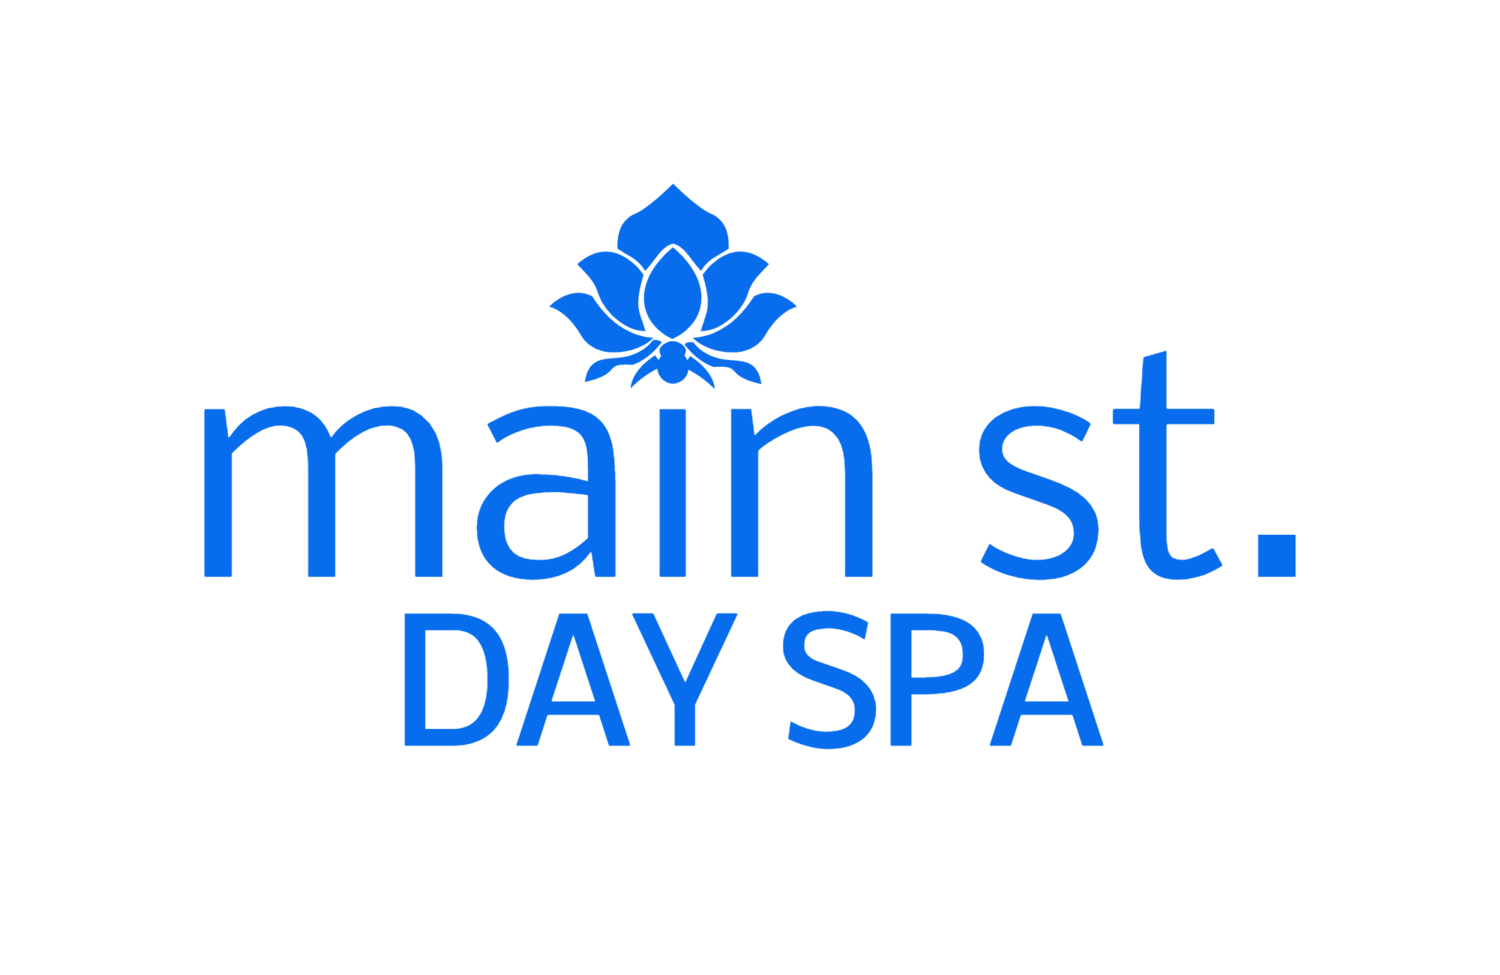 Main St. Day Spa